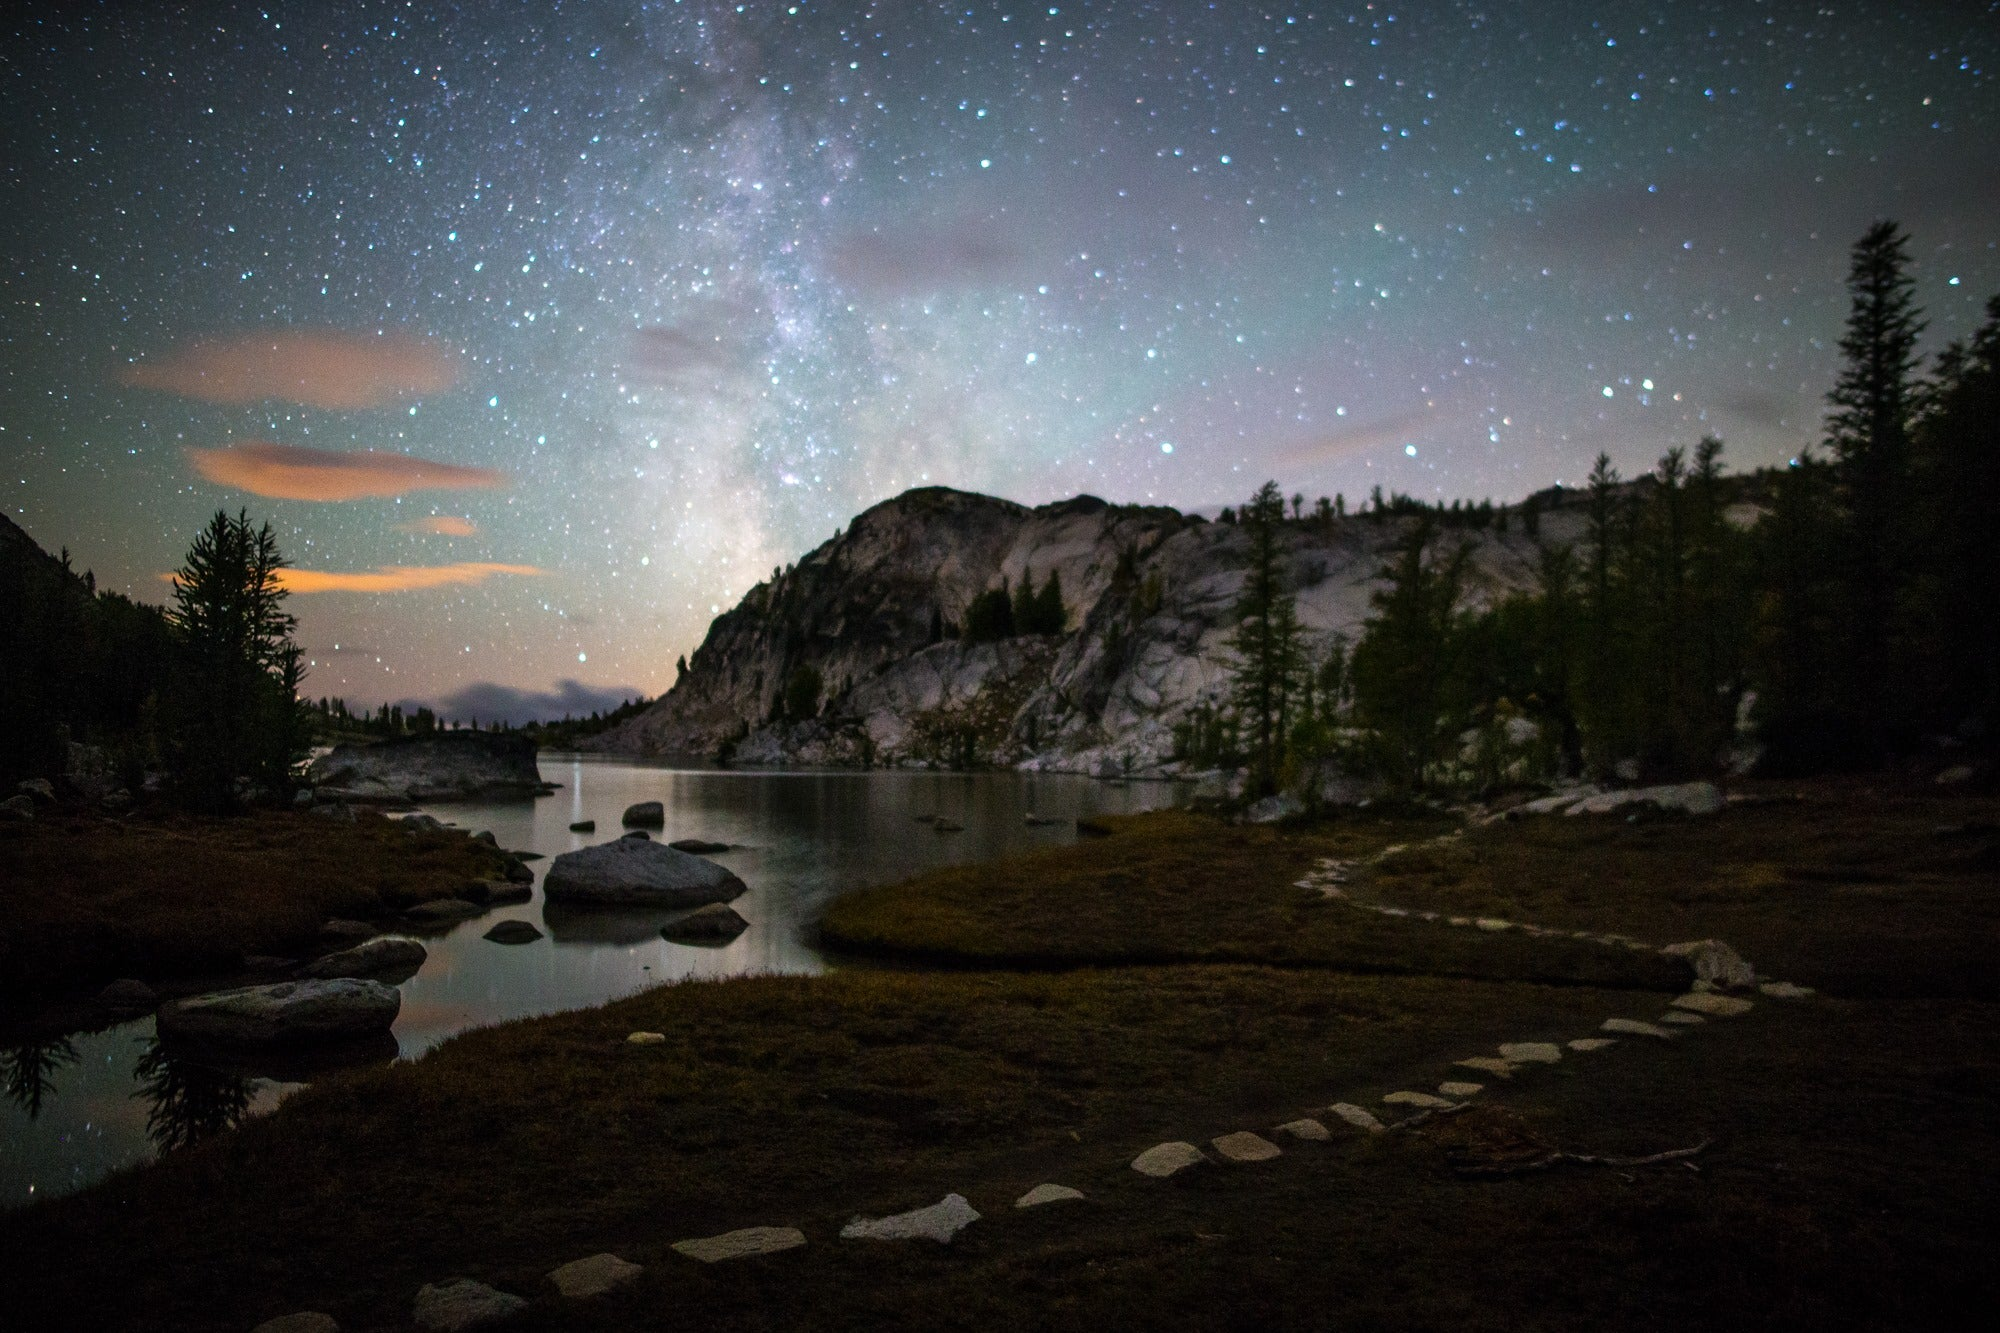 Starry sky with mountain and river at Perfection Lake Trail, Enchantment Basin, WA